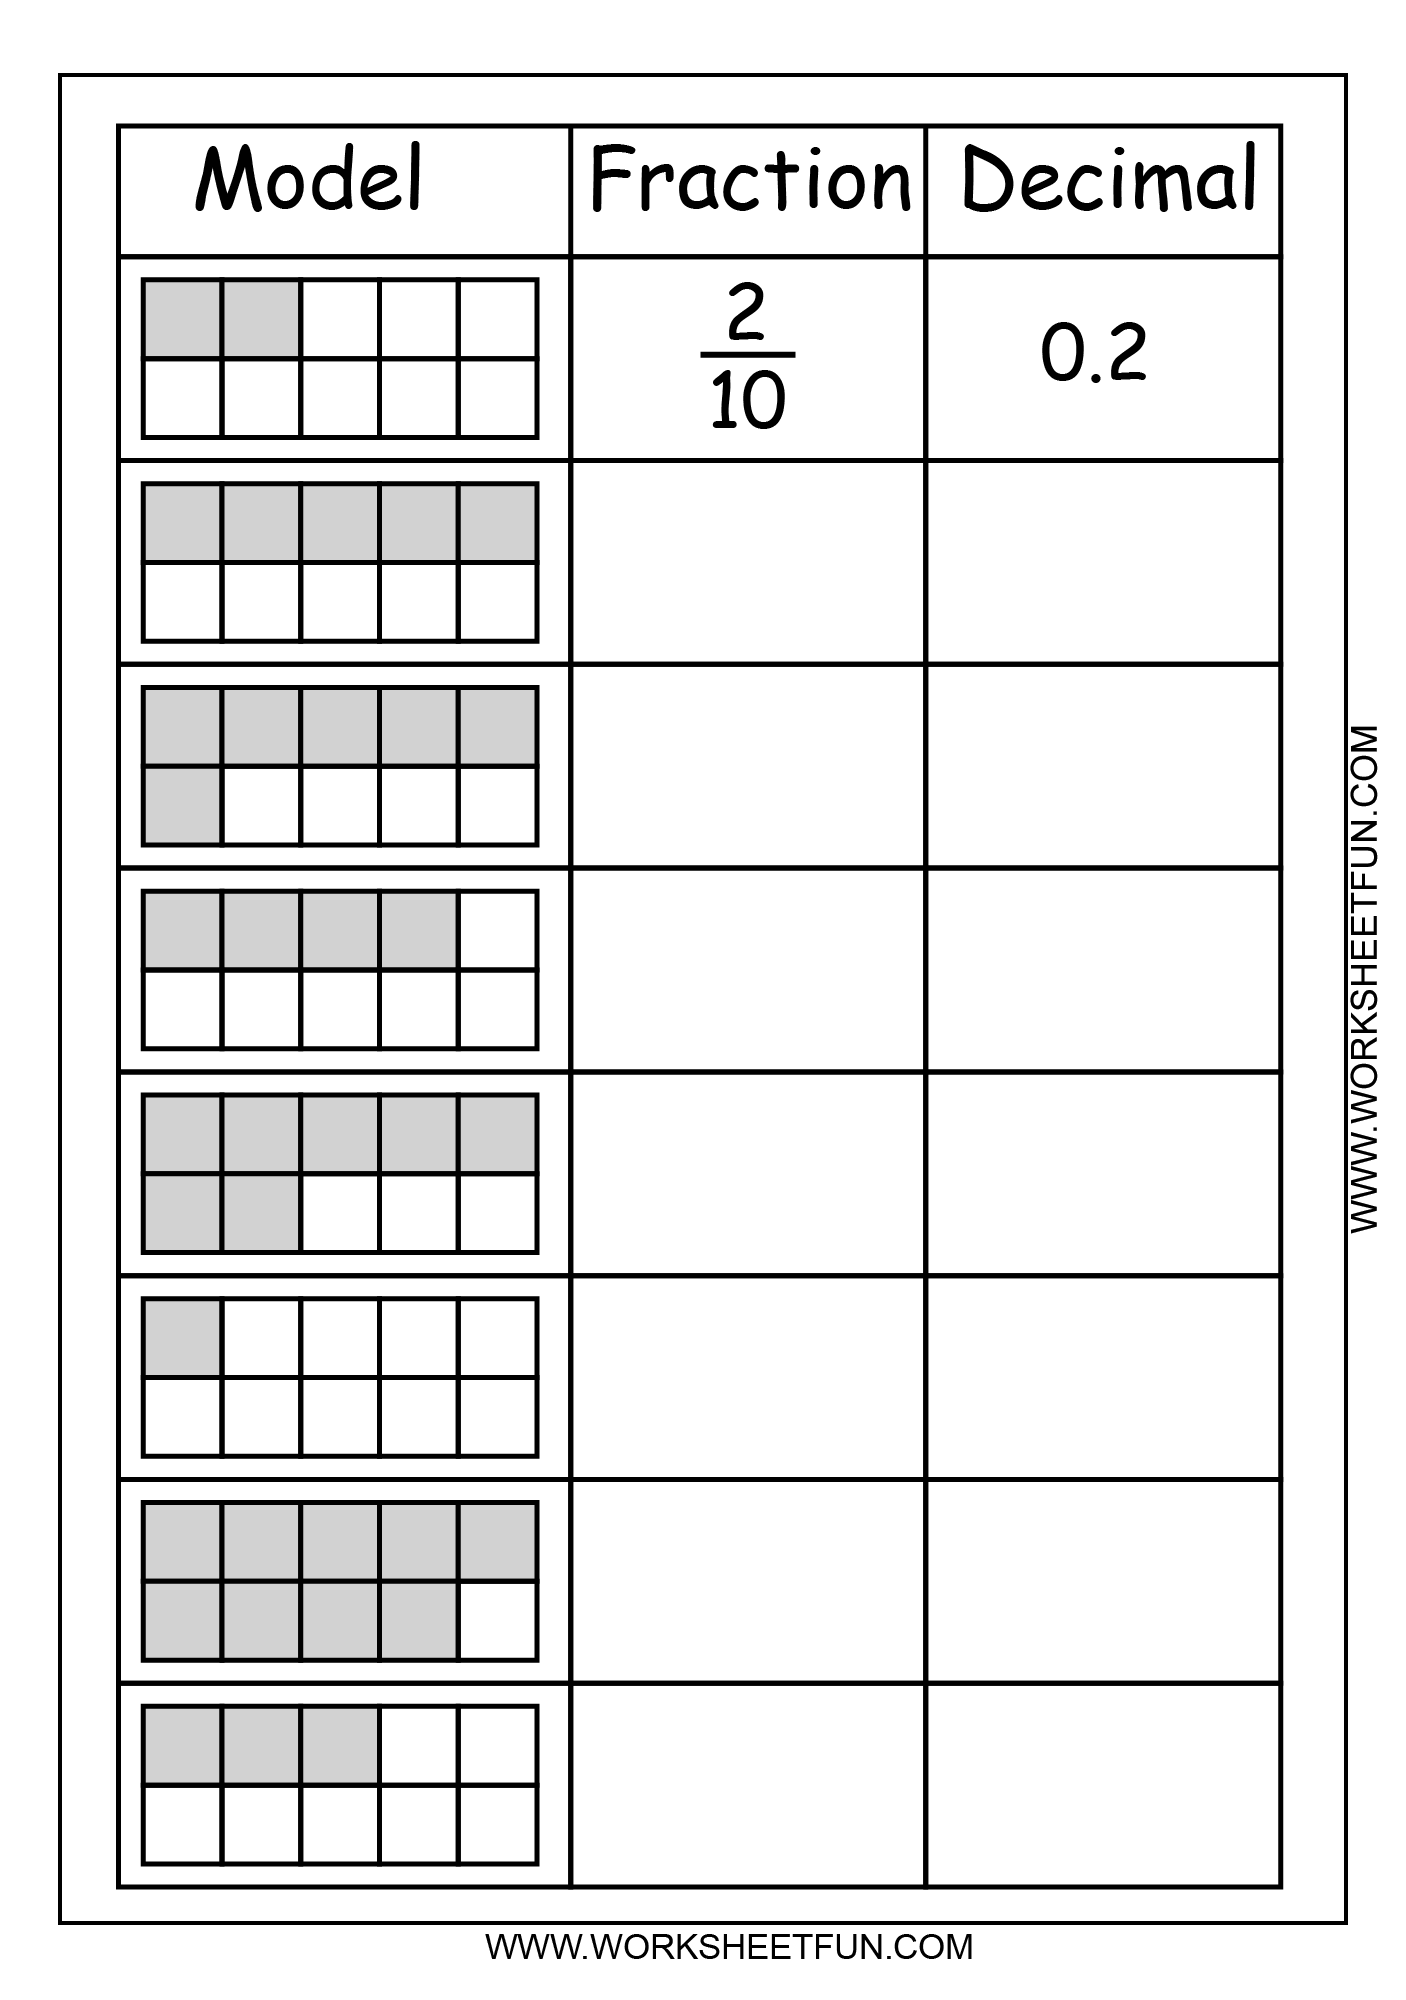 Model – Fraction – Decimal – 2 Worksheets   Math fractions [ 2000 x 1406 Pixel ]